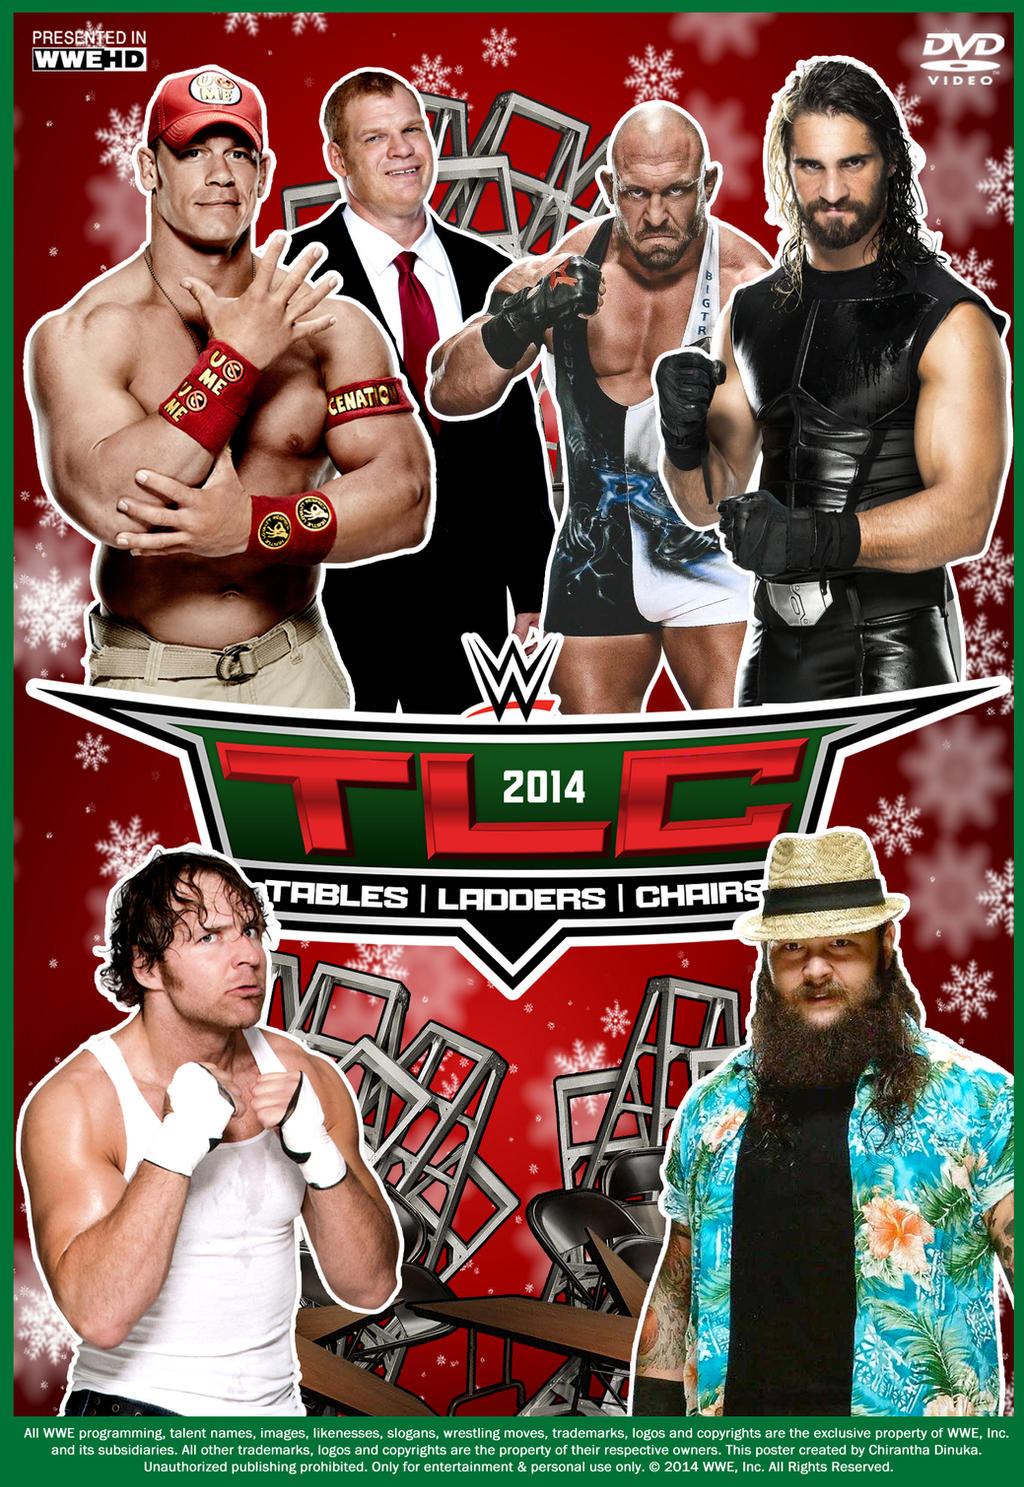 Wwe tables ladders and chairs 2013 poster - Filename Wwe_tlc_2014_poster_by_chirantha D893hpo Jpg View Image Found On Art Wwe Tlc 2014 Poster 499008876